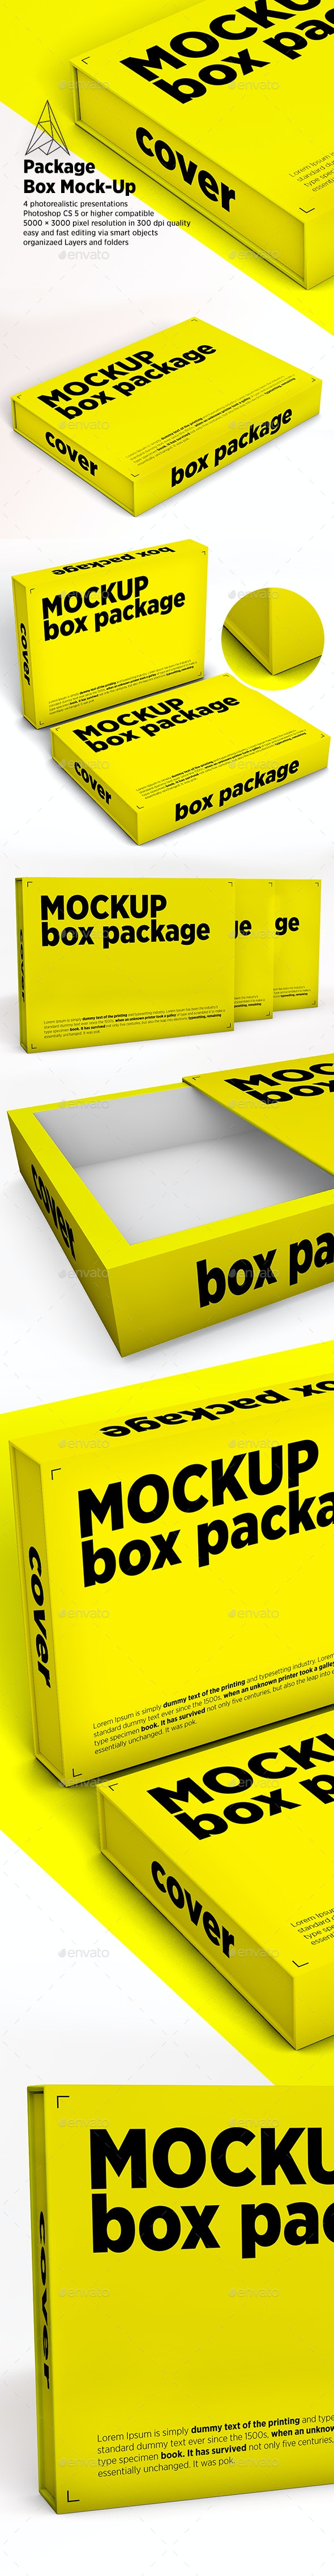 Package Box Mock-Up - Print Product Mock-Ups